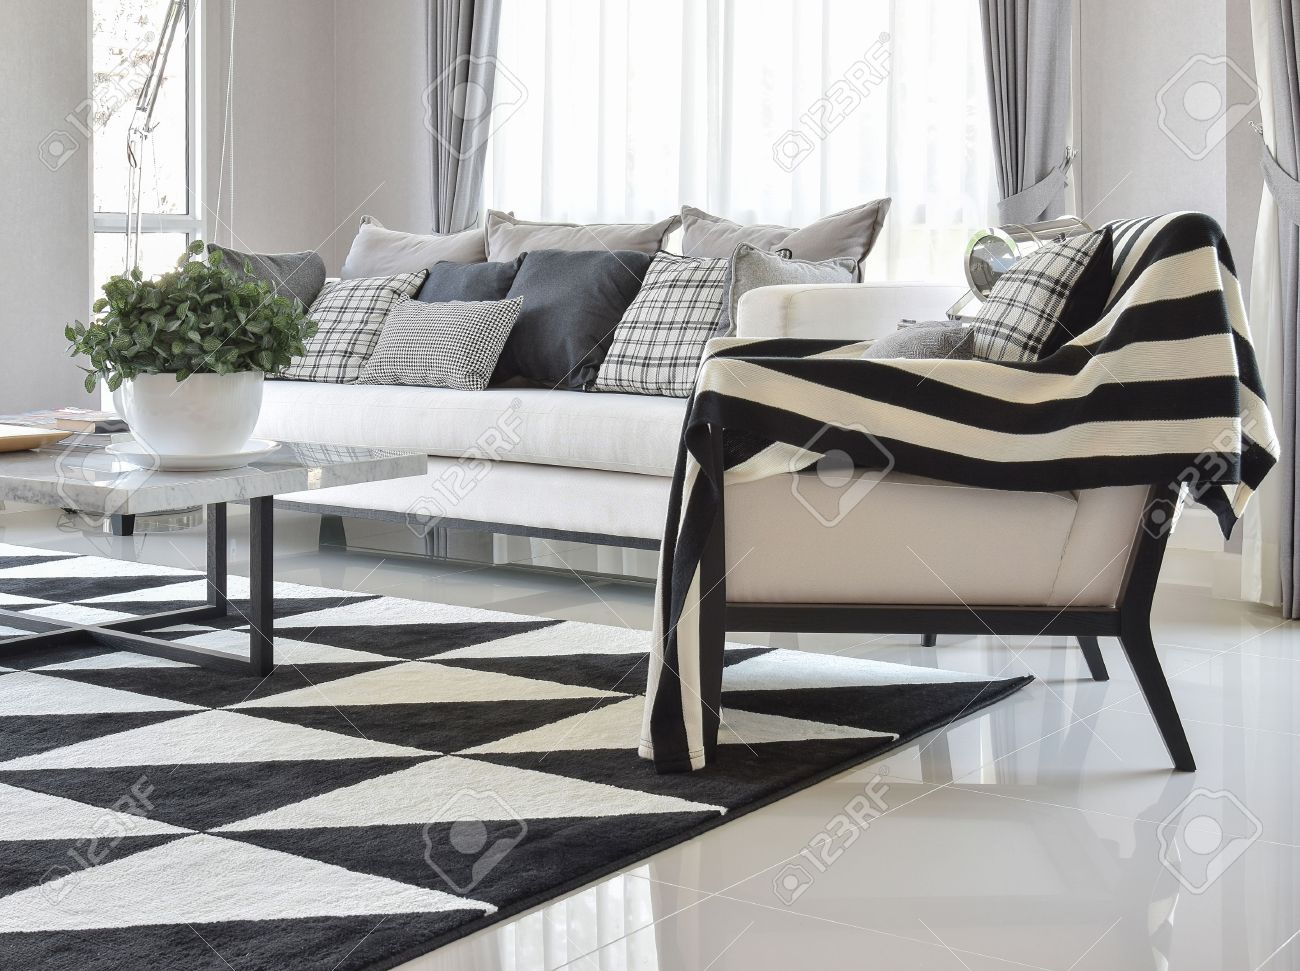 Salon Noir Et Blanc modern living room interior with black and white checked pattern..